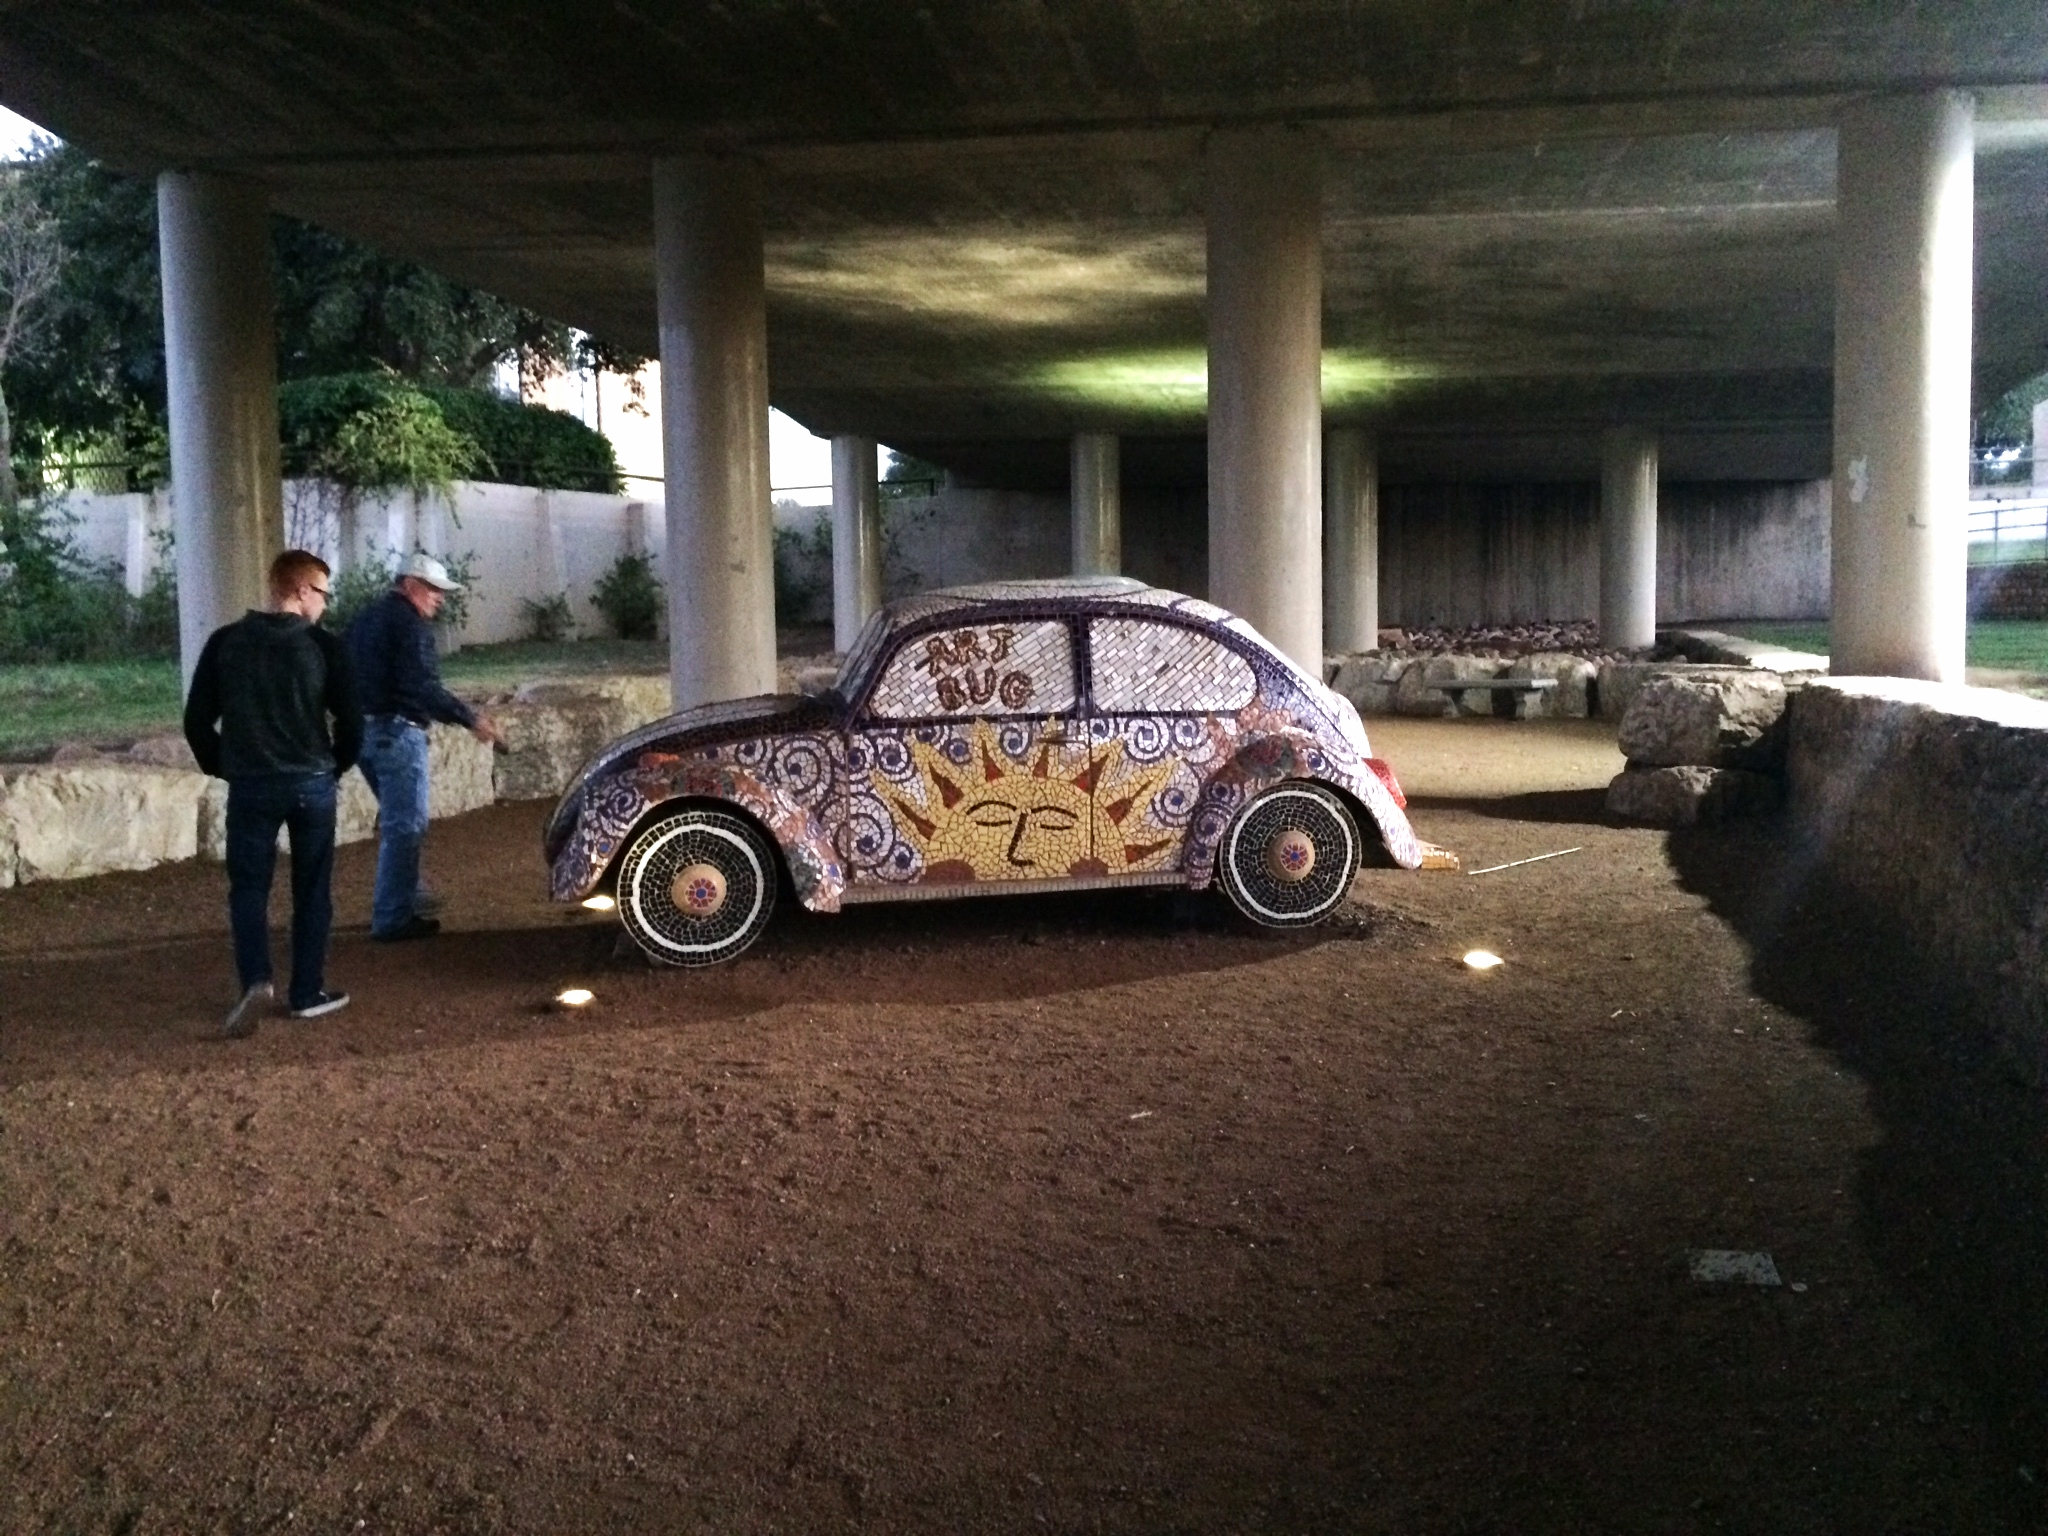 Public art under bridges along the riverwalk-- literally a mosaic'd VW bug. So. Cool.